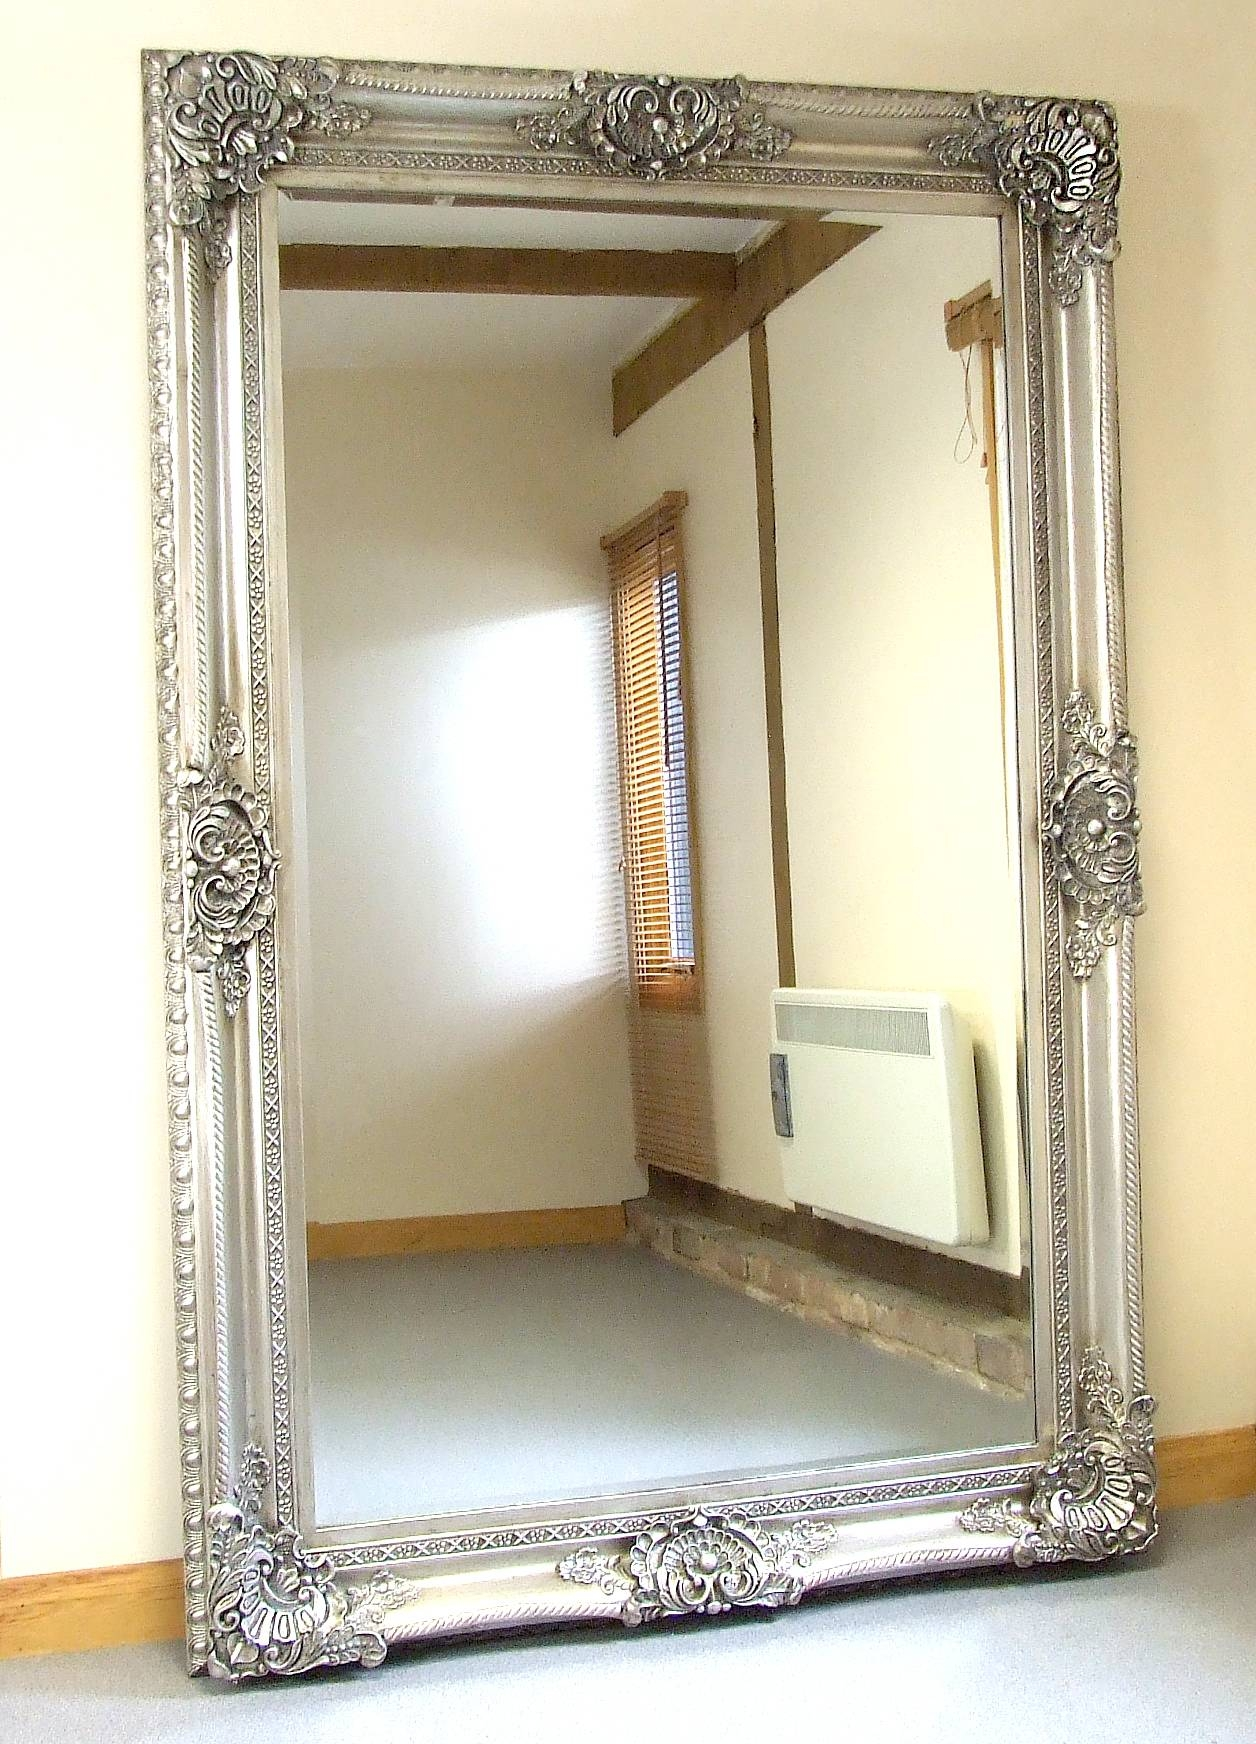 Furniture: Pewter Edted Leaner Mirror With Wooden Floor And Rug Inside Pewter Ornate Mirrors (View 5 of 15)